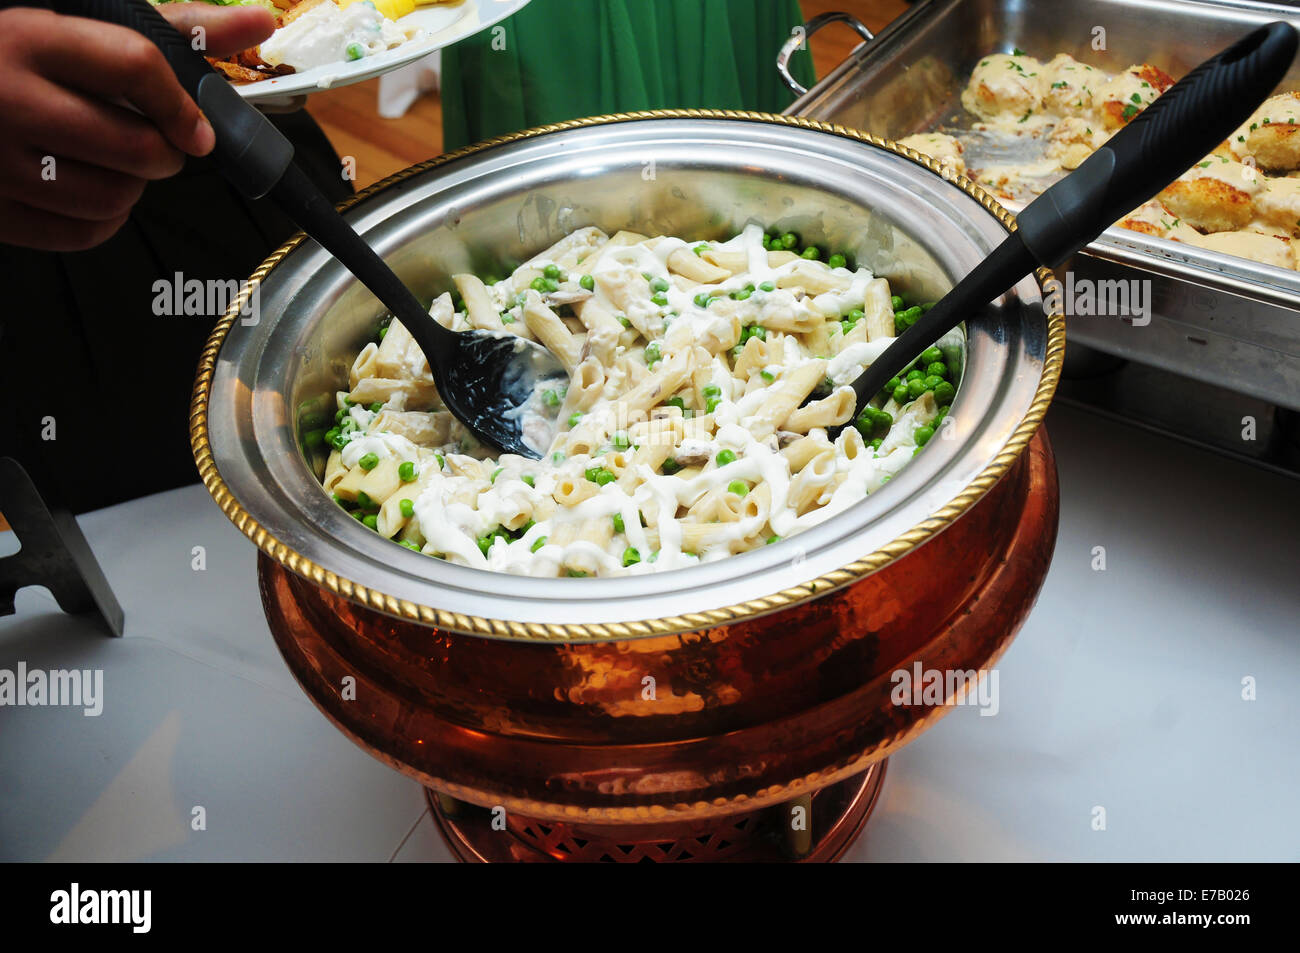 A large copper bowl of pasta and snow peas at a buffet. - Stock Image